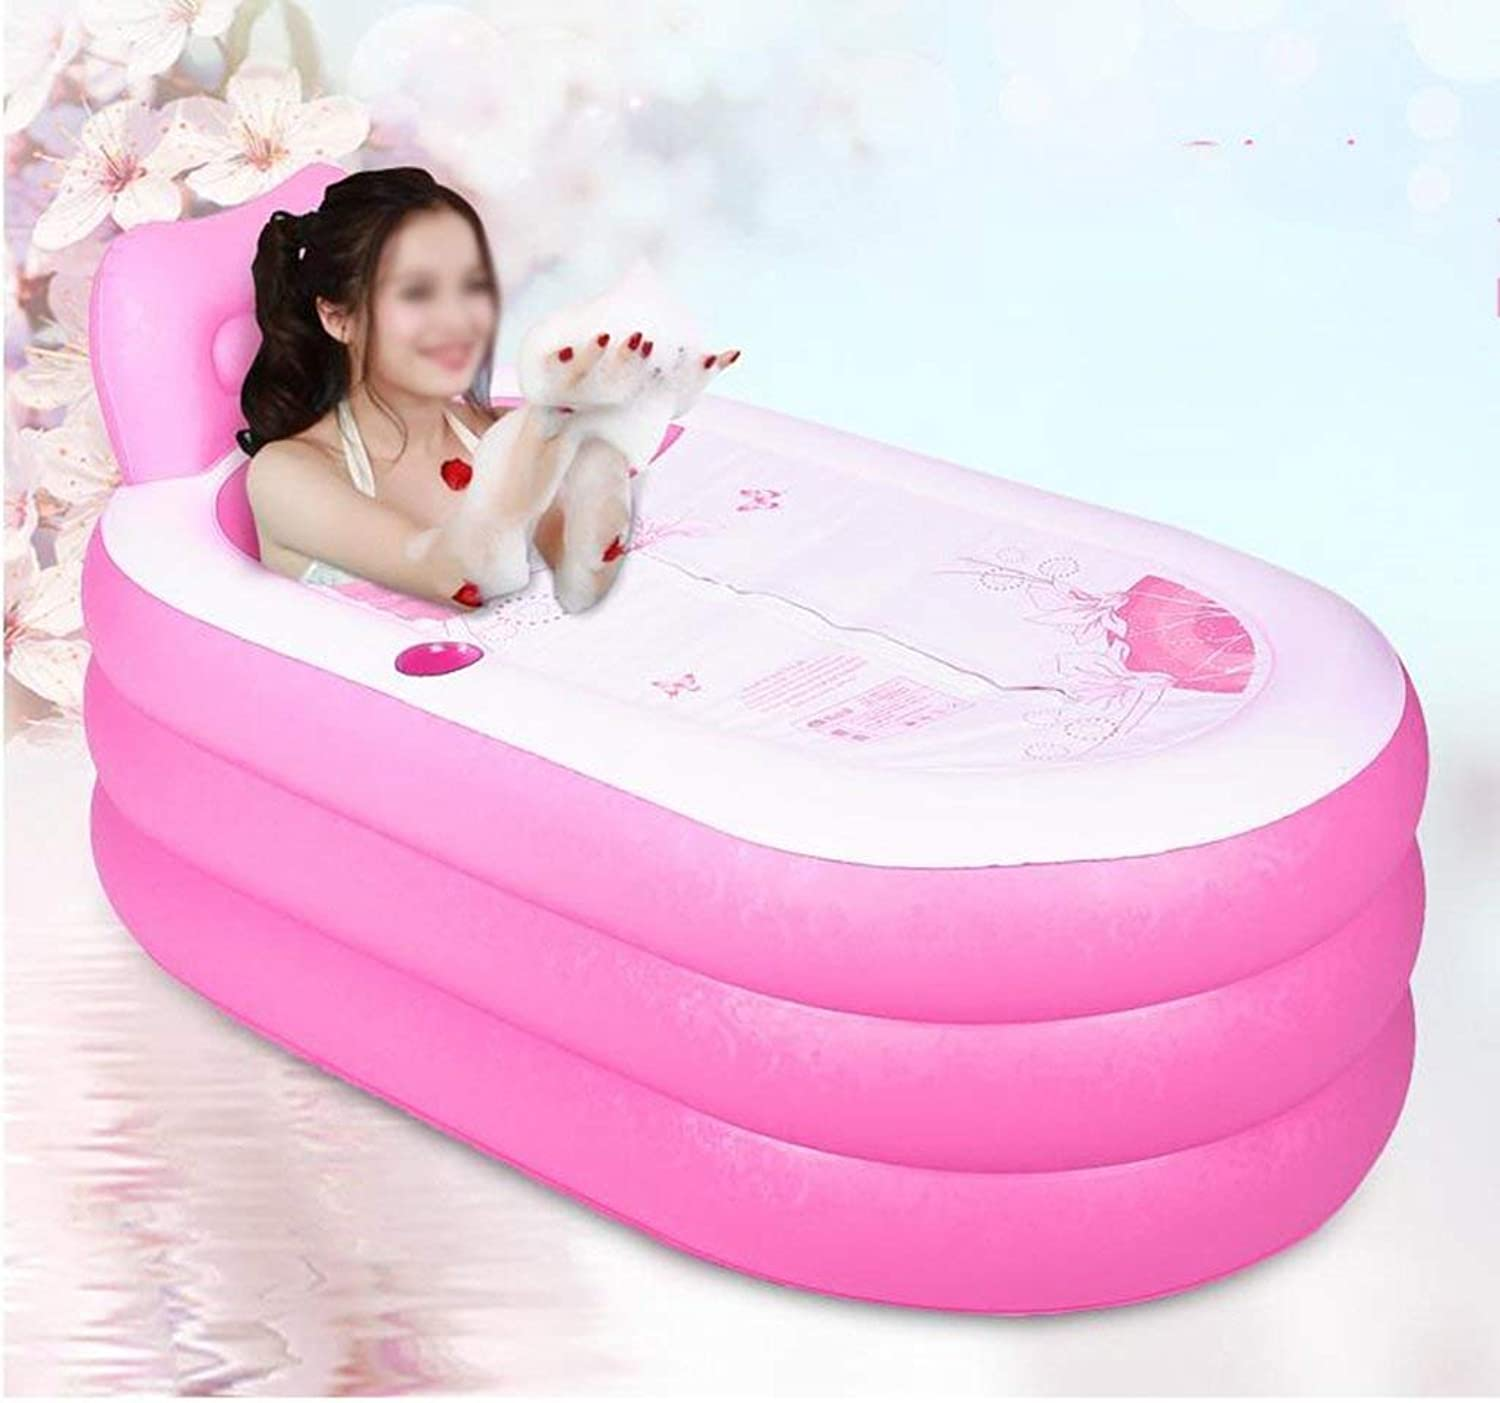 EUNADINAWENHUA Inable bathtub Inable folding thick adult bathtub Air Baths for Living Room (color   Pink, Size   150  88cm)